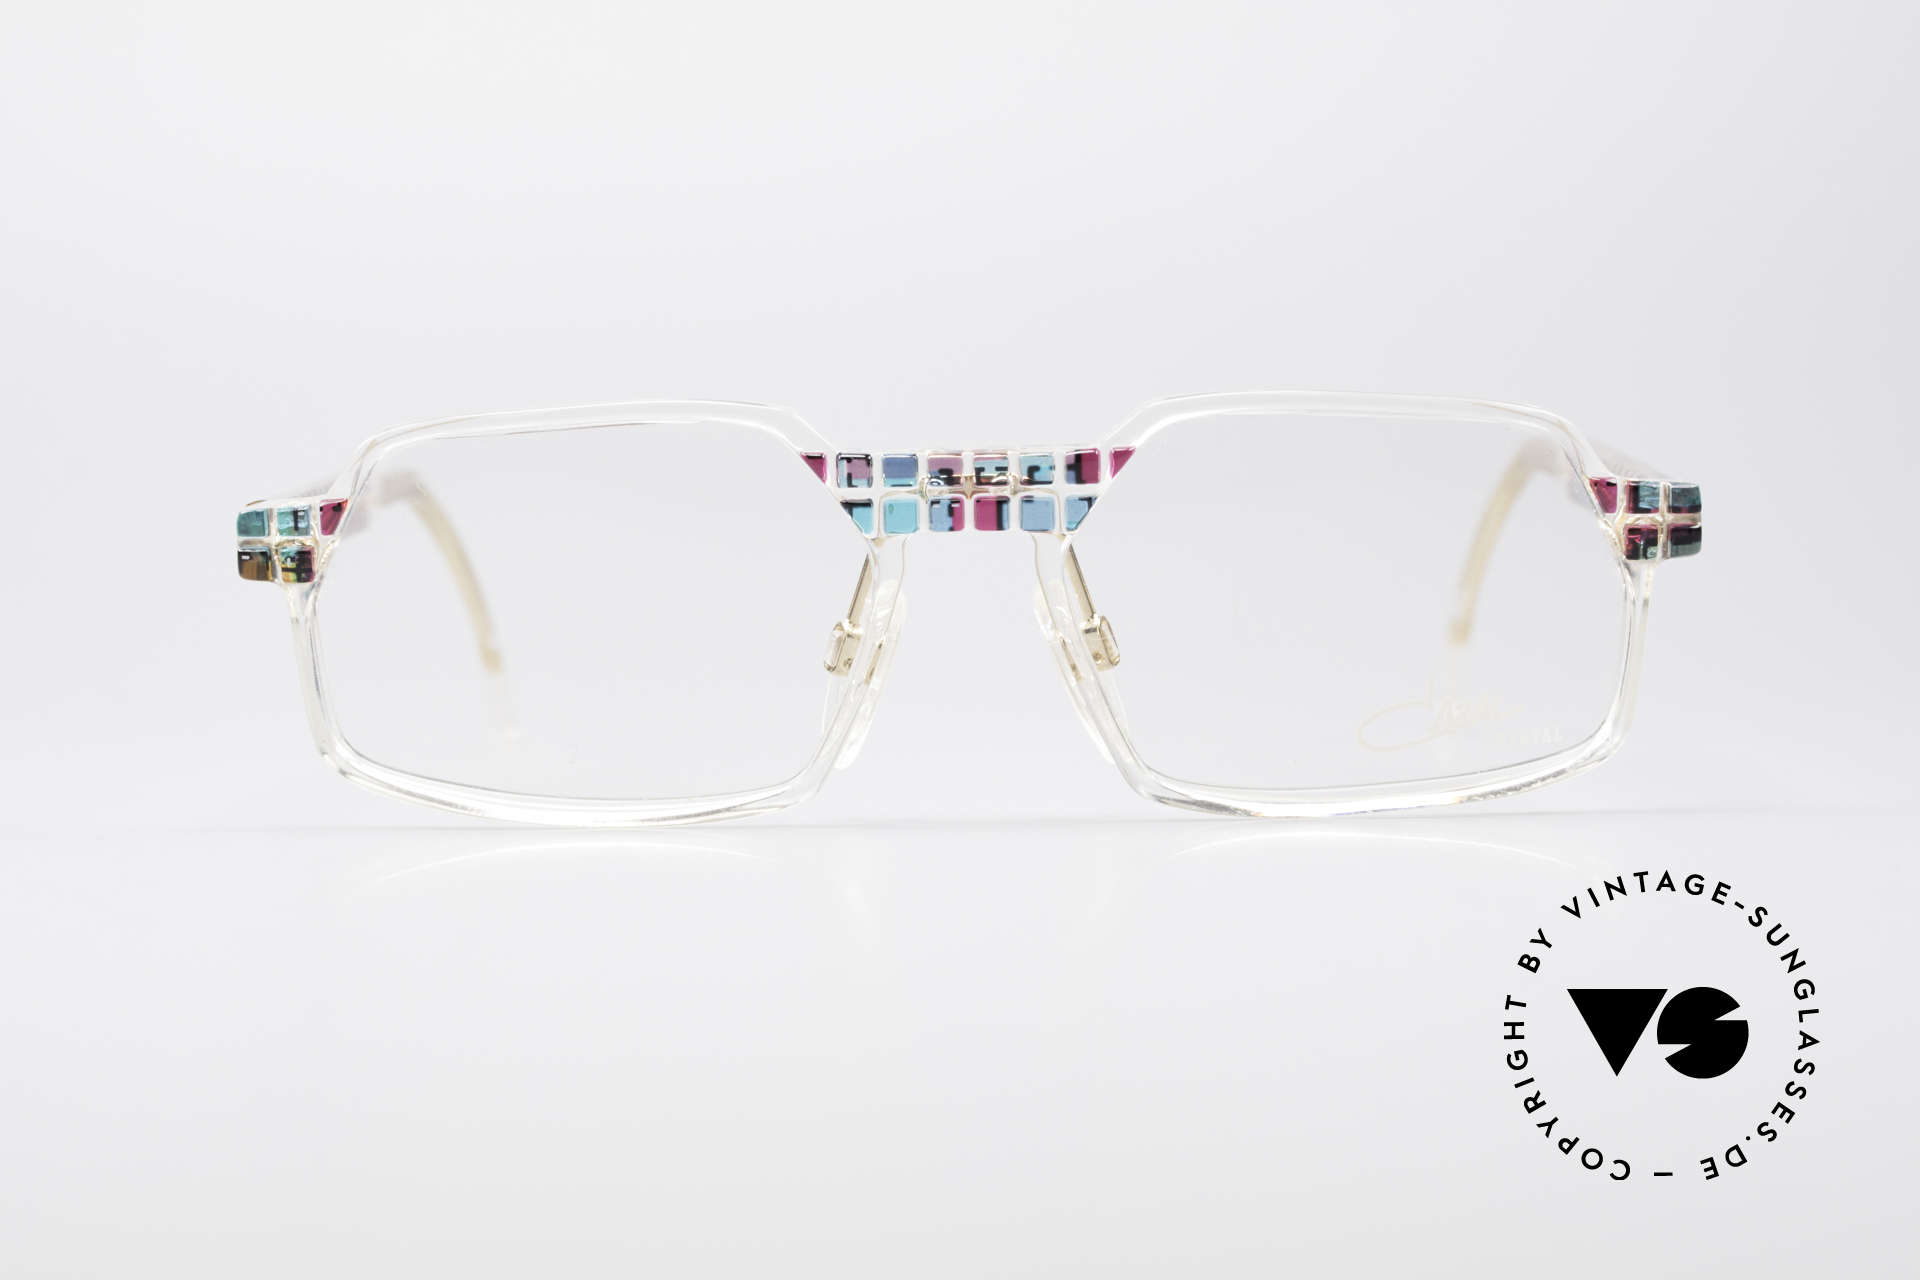 Cazal 511 - Crystal Limited Vintage Cazal, made in the 90's as limited-lot production in Germany, Made for Men and Women